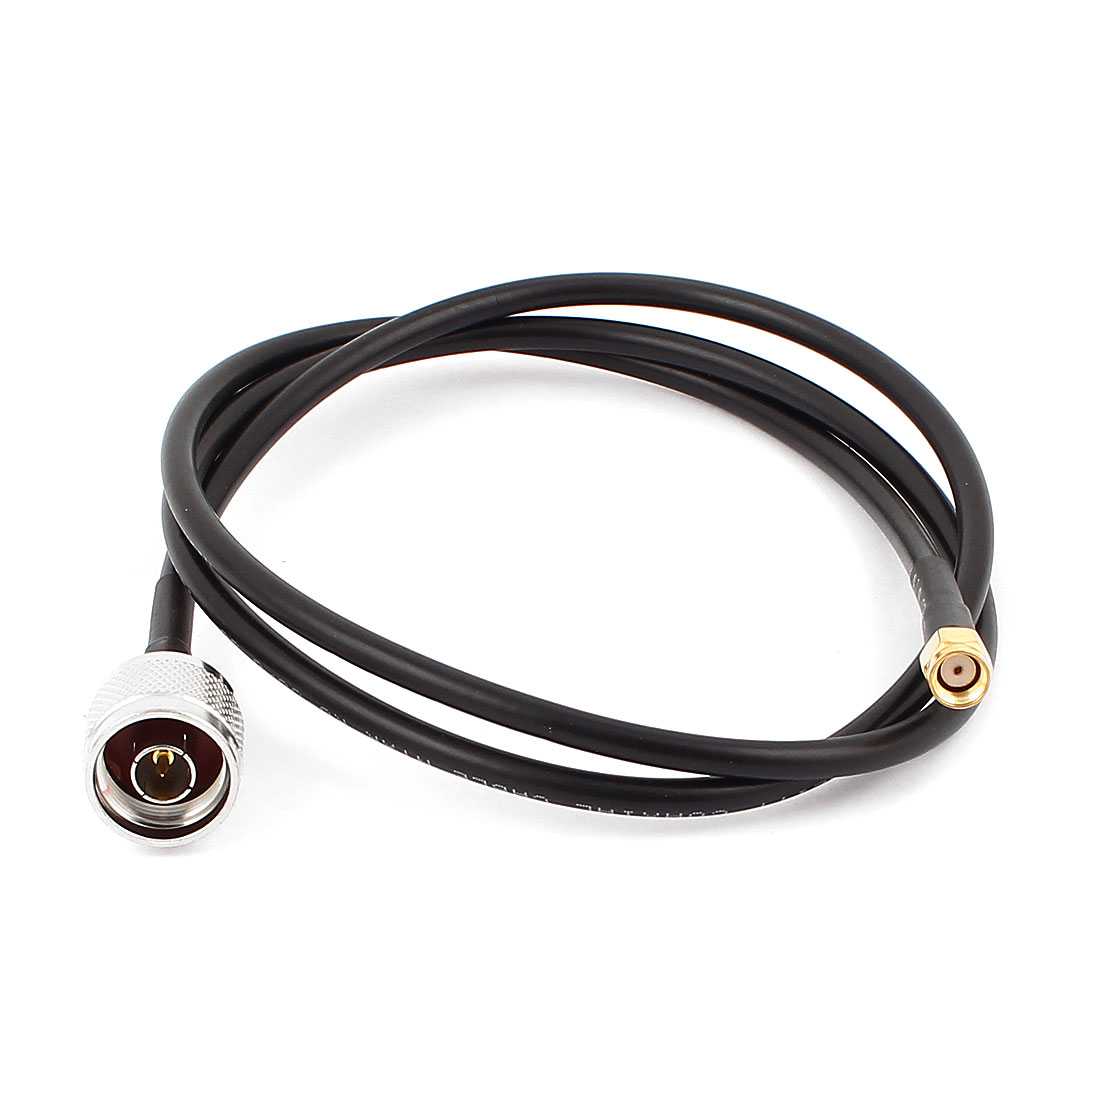 N Male to RP-SMA Female Adapter RG58 RF Pigtail Coaxial Cable 1M